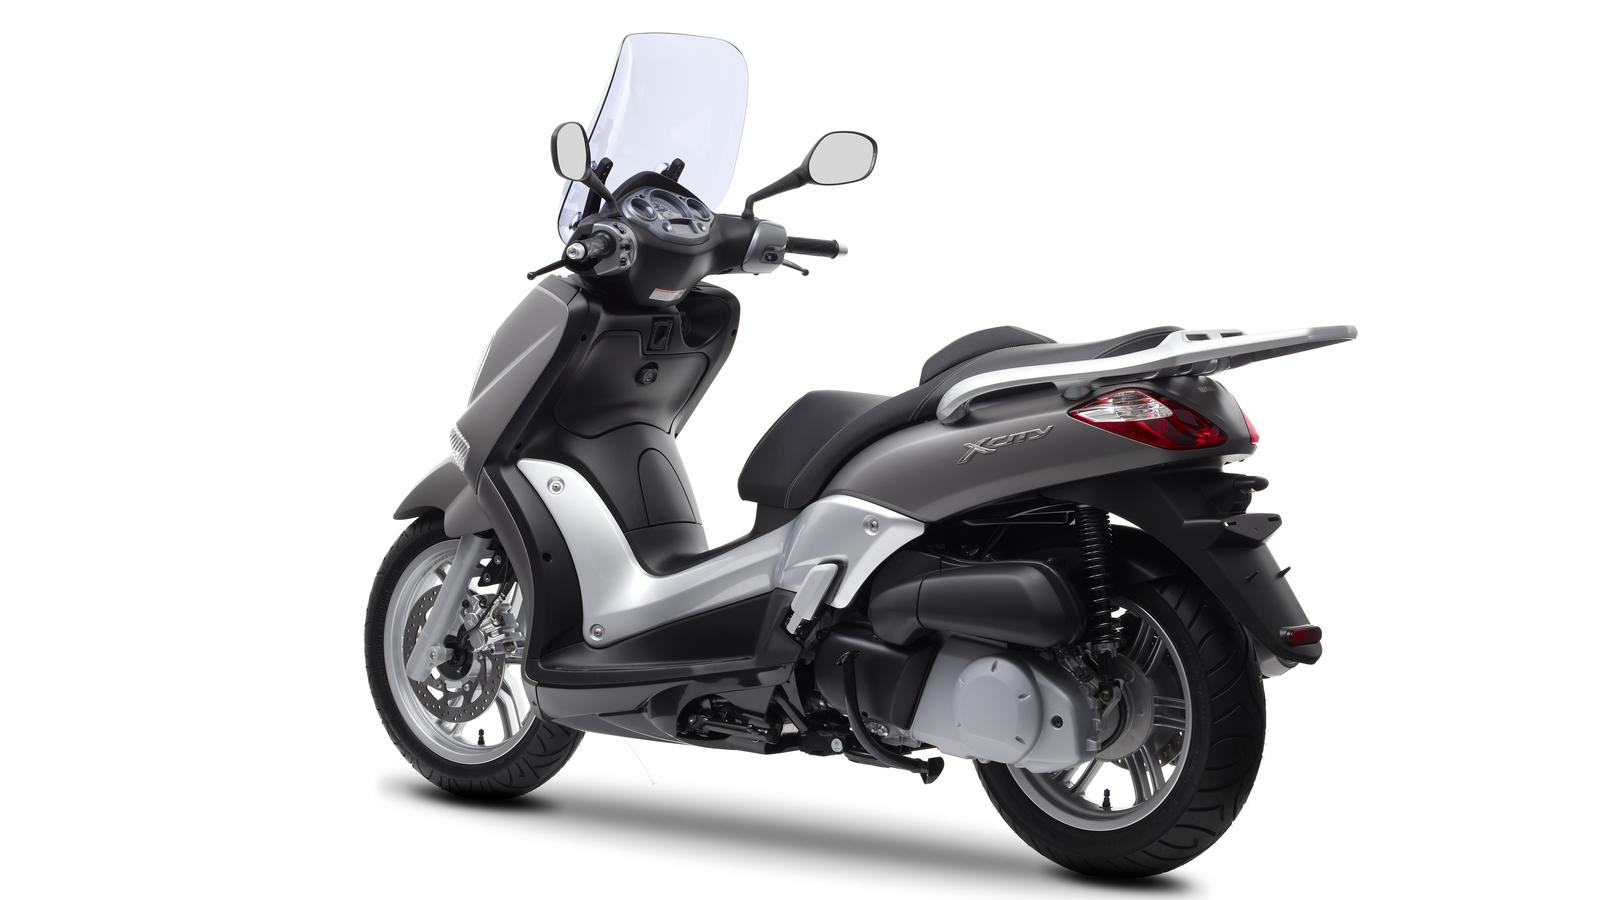 2012 yamaha x city 250 gallery 459277 top speed. Black Bedroom Furniture Sets. Home Design Ideas